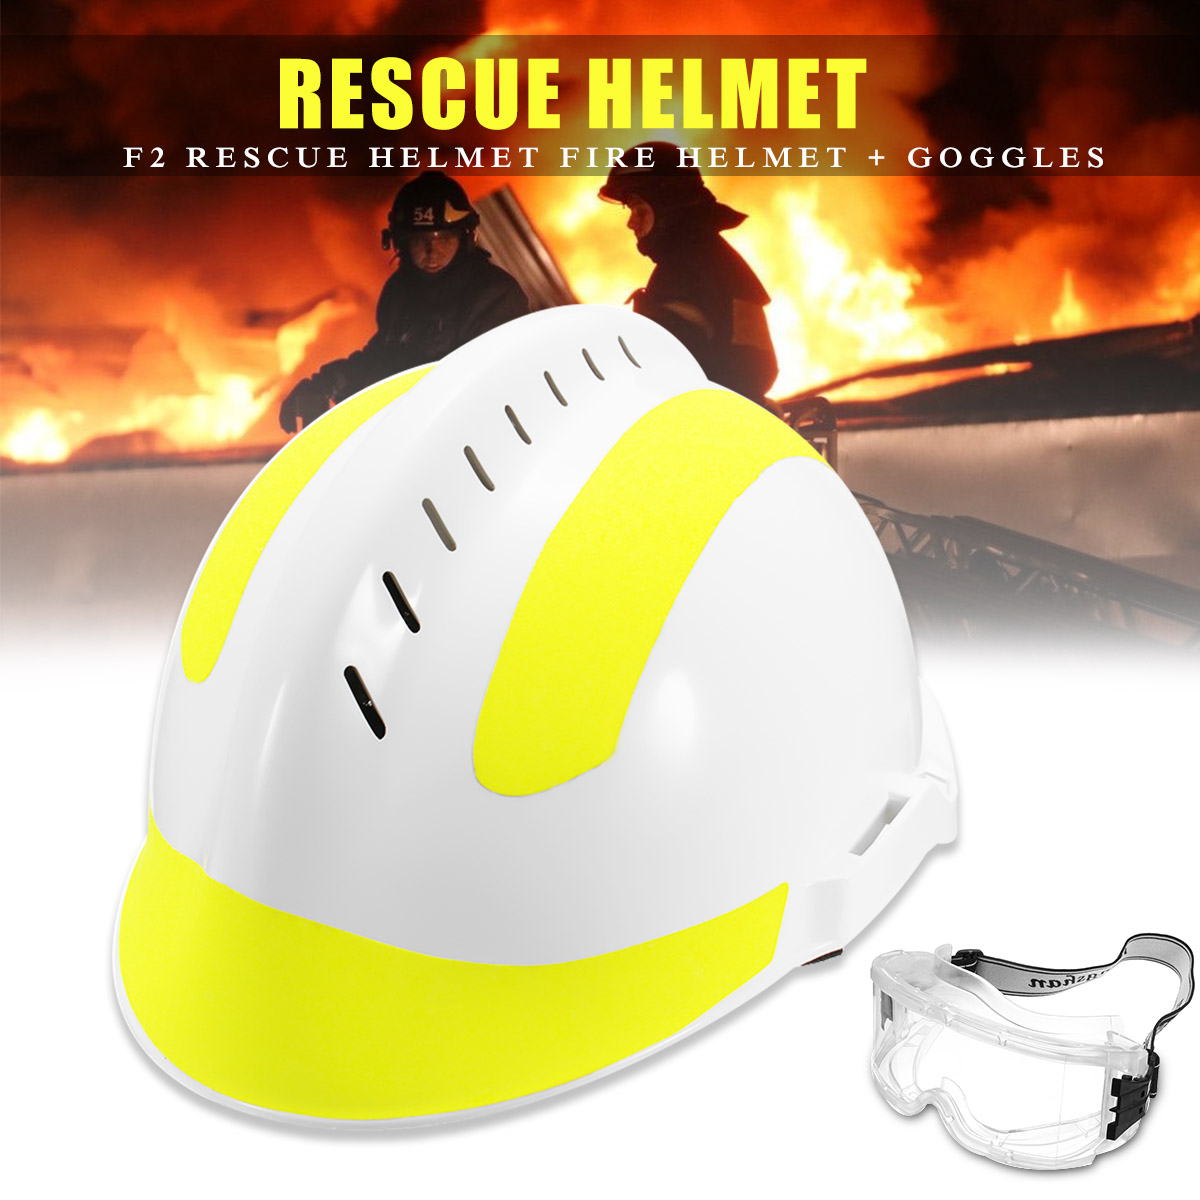 1Set Safurance Rescue Helmet For Fire Fighter with Protective Glasses Safety Protector White Workplace Hard Hat Safety Supplies 1set safurance rescue helmet for fire fighter with protective glasses safety protector white workplace hard hat safety supplies